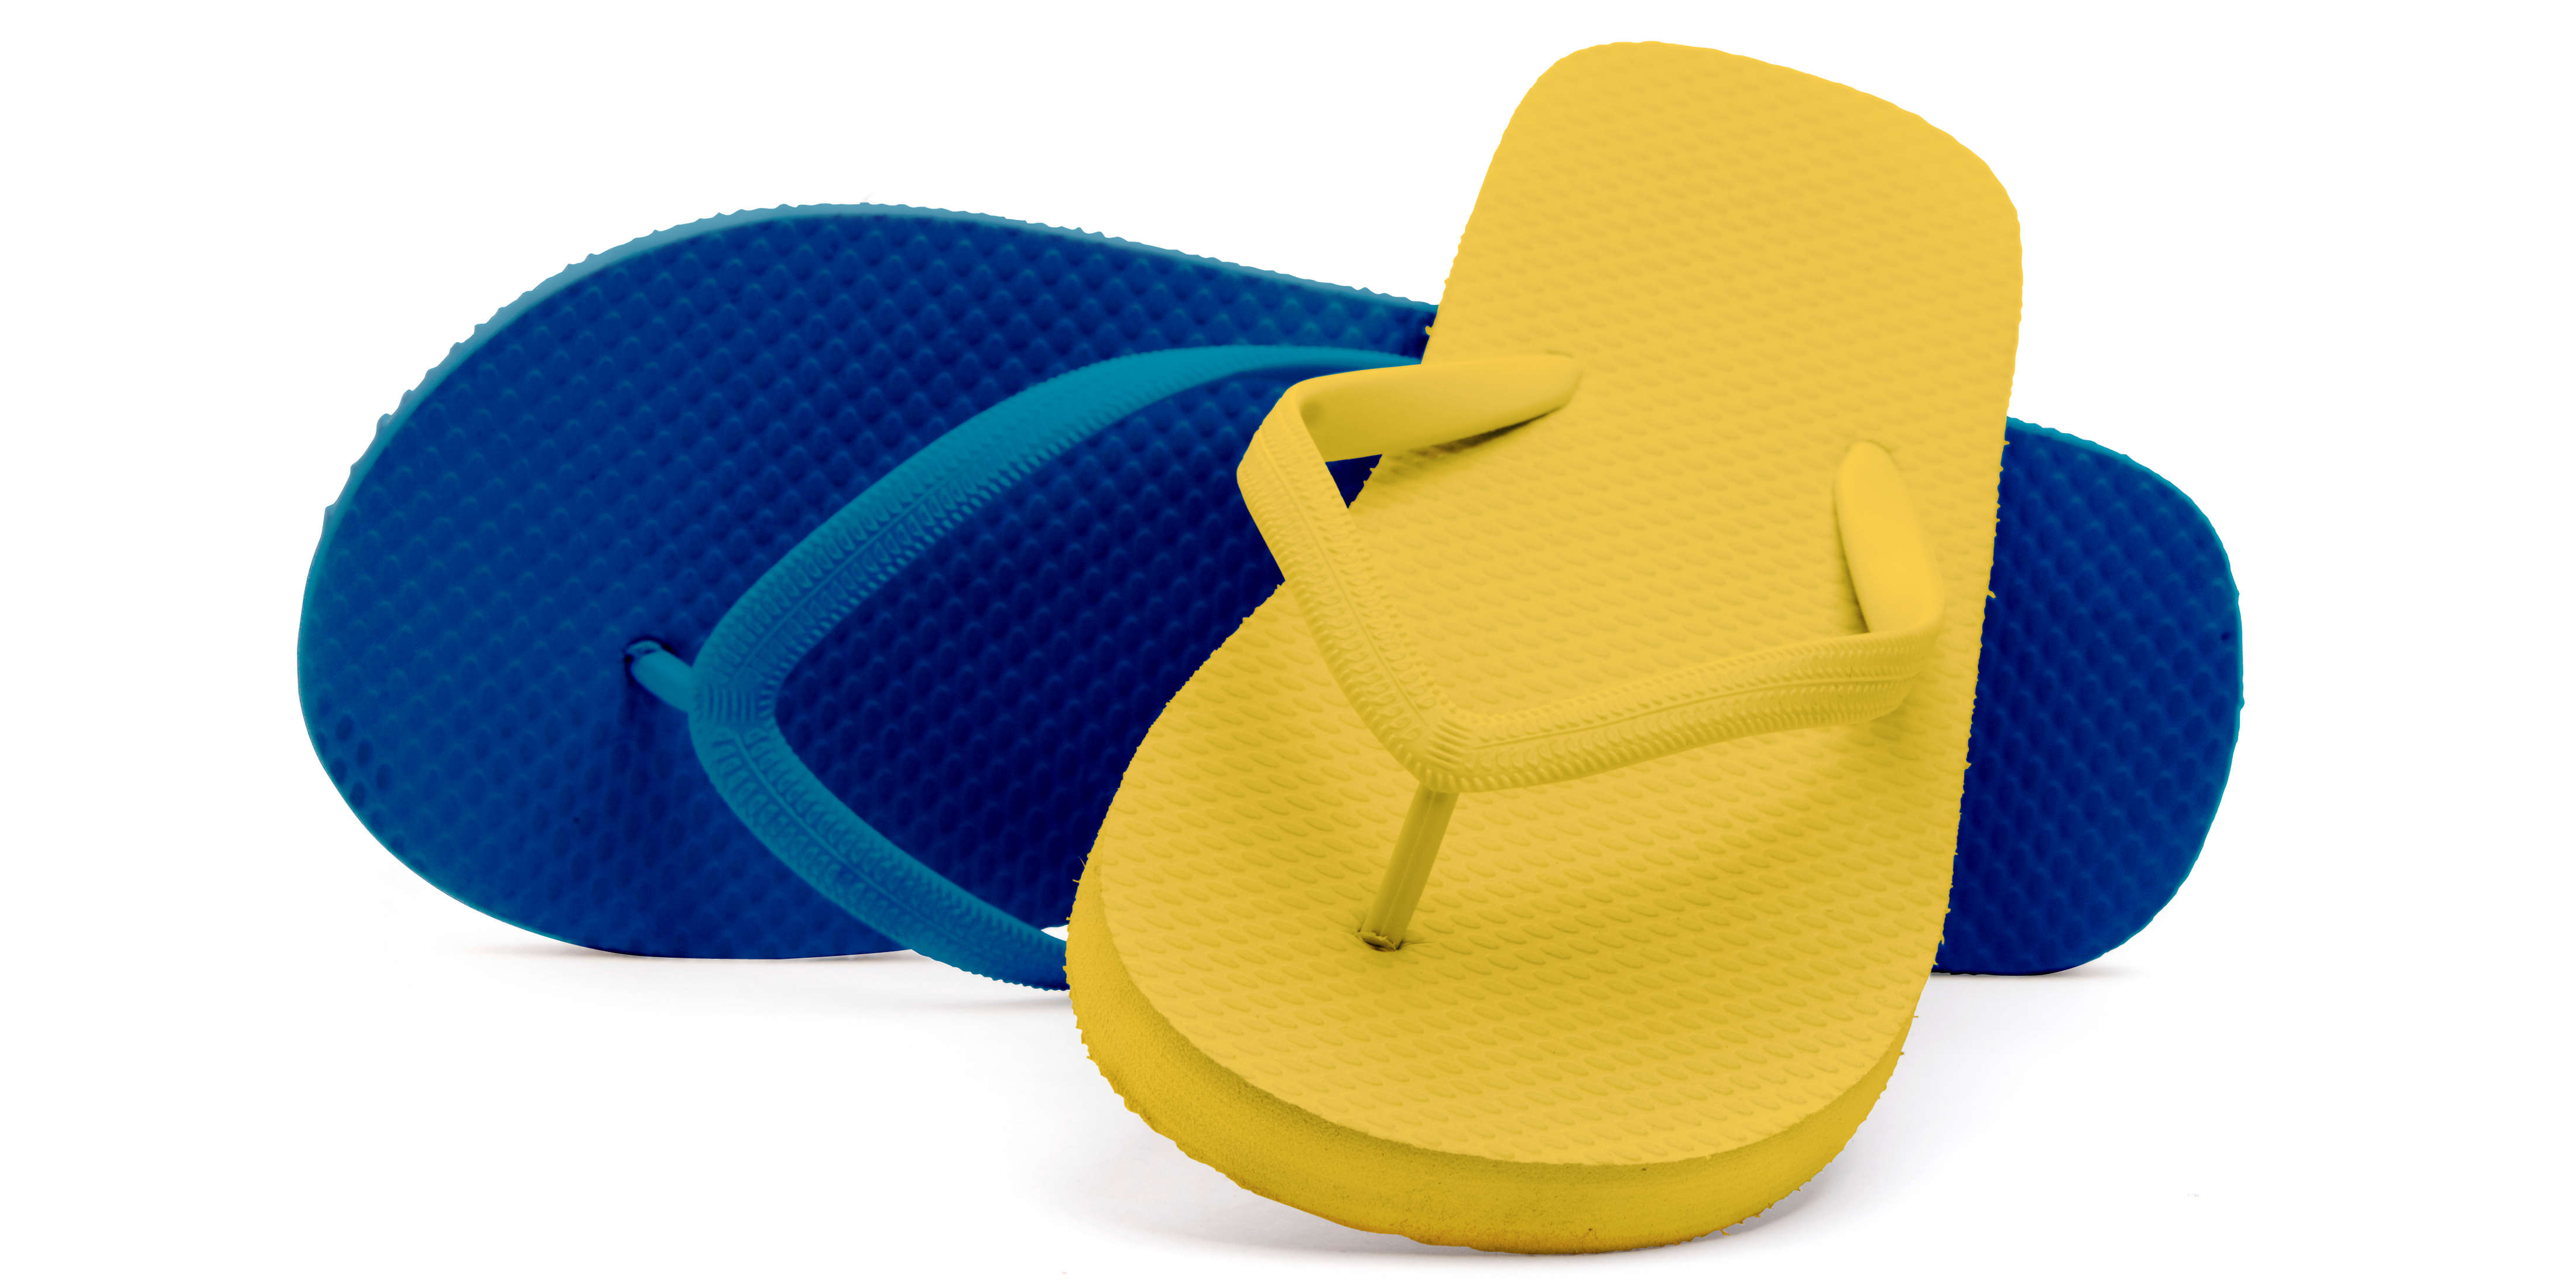 Flip-Flops in METRO GROUP colours